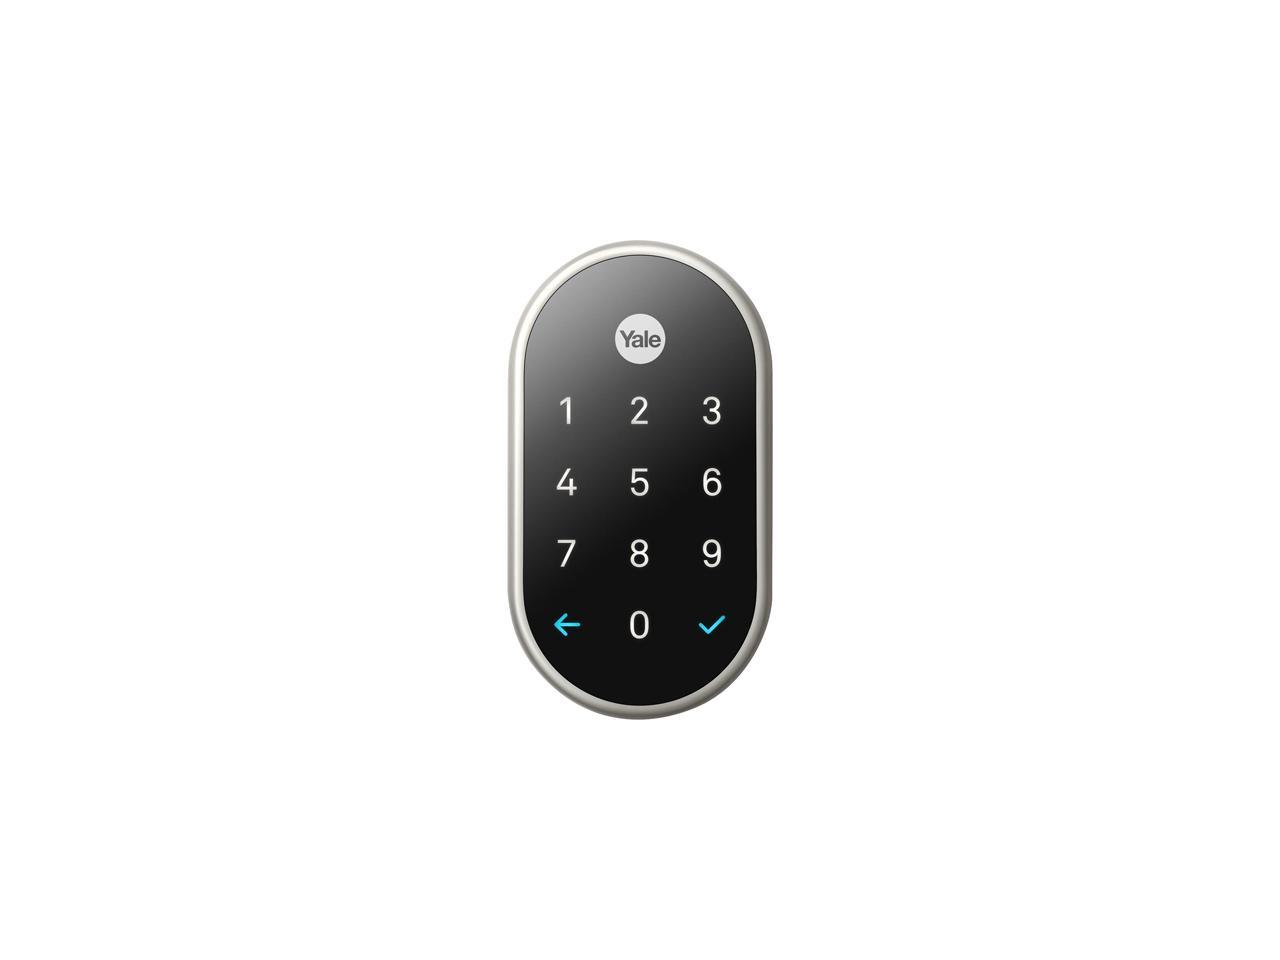 Details about Nest x Yale Wi-Fi Smart Lock with Nest Connect - Satin Nickel